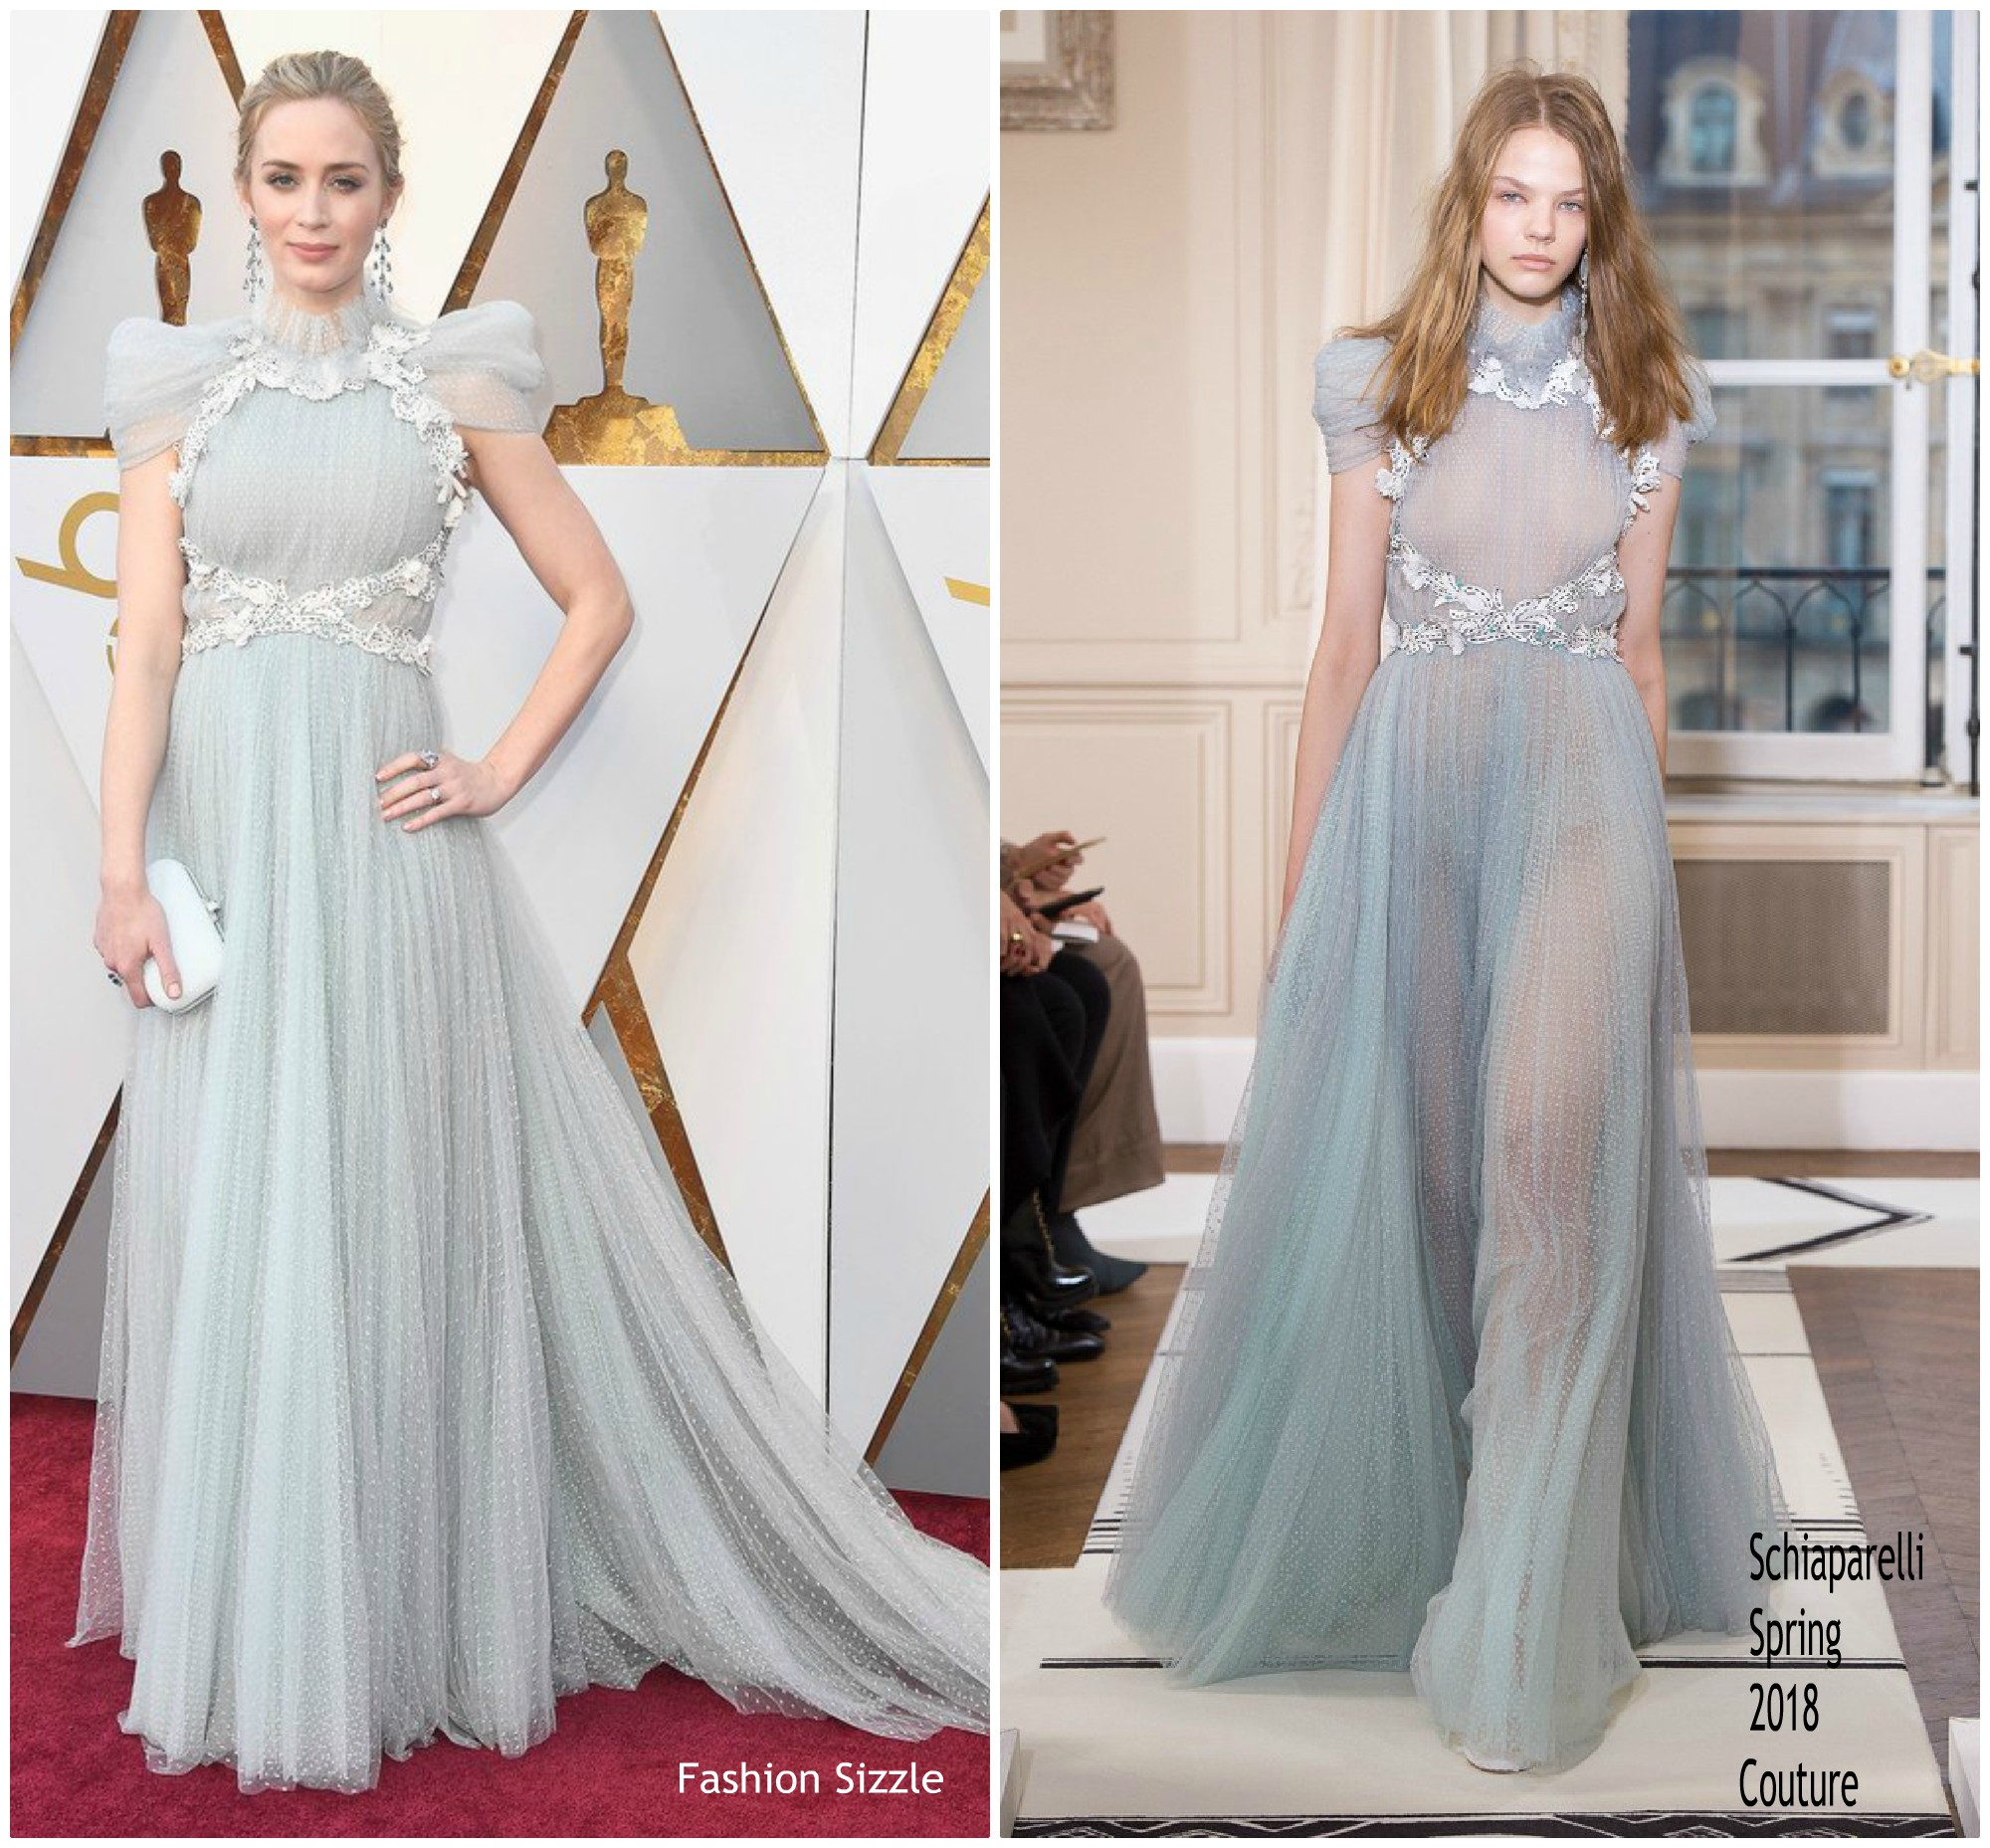 Emily Blunt Schiaparelli Couture Oscars 2018 further 20002 likewise Best 2015 Wedding Dress Trends further Watch in addition Oscars 2018 Best Director Predictions 1201789013. on oscar contenders for 2018